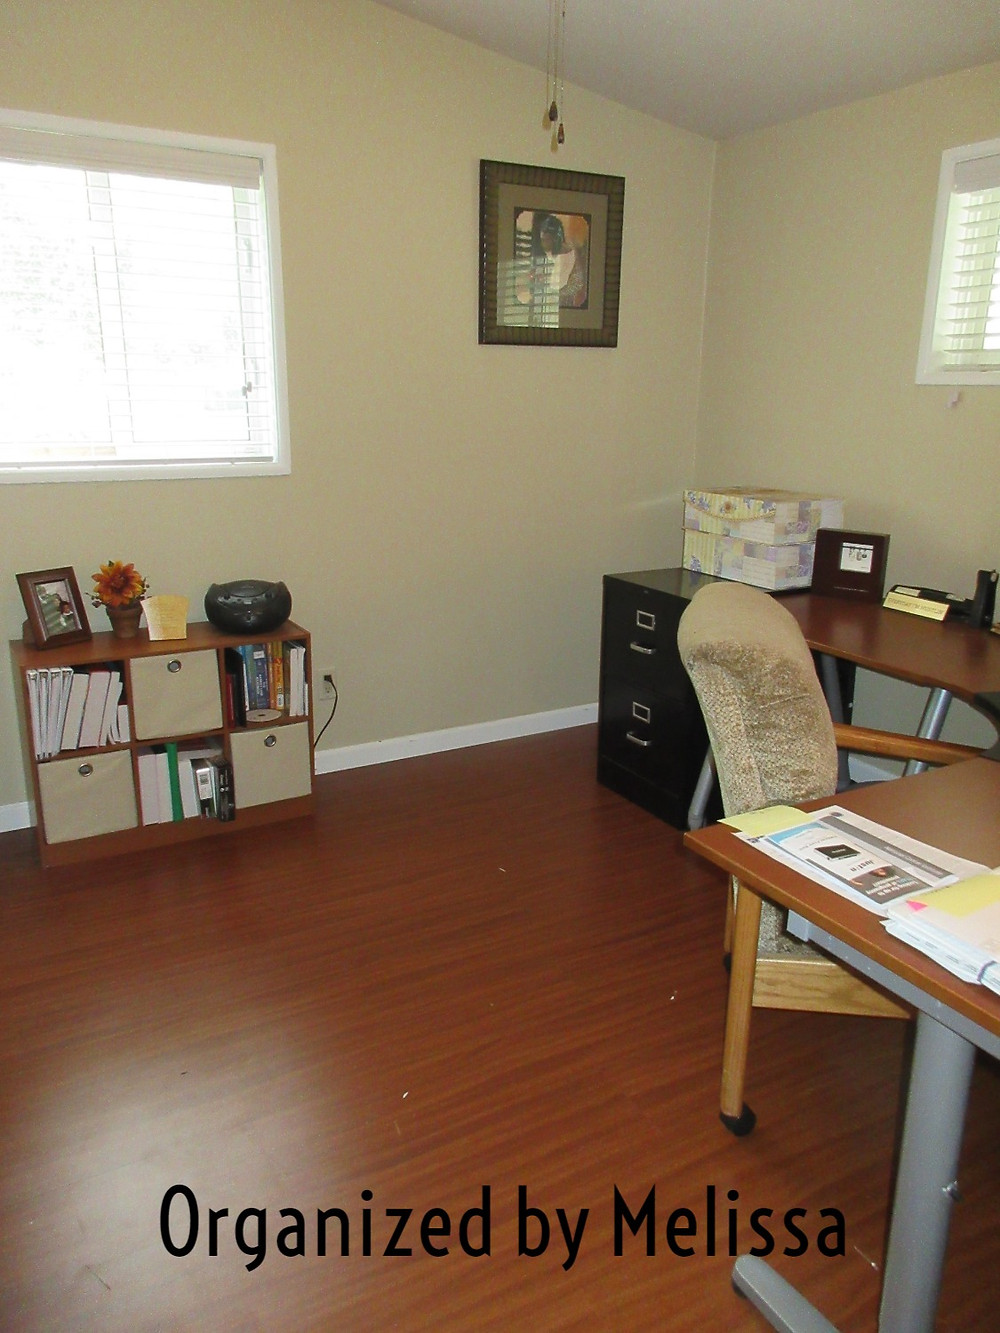 A Home Office Organized by Melissa